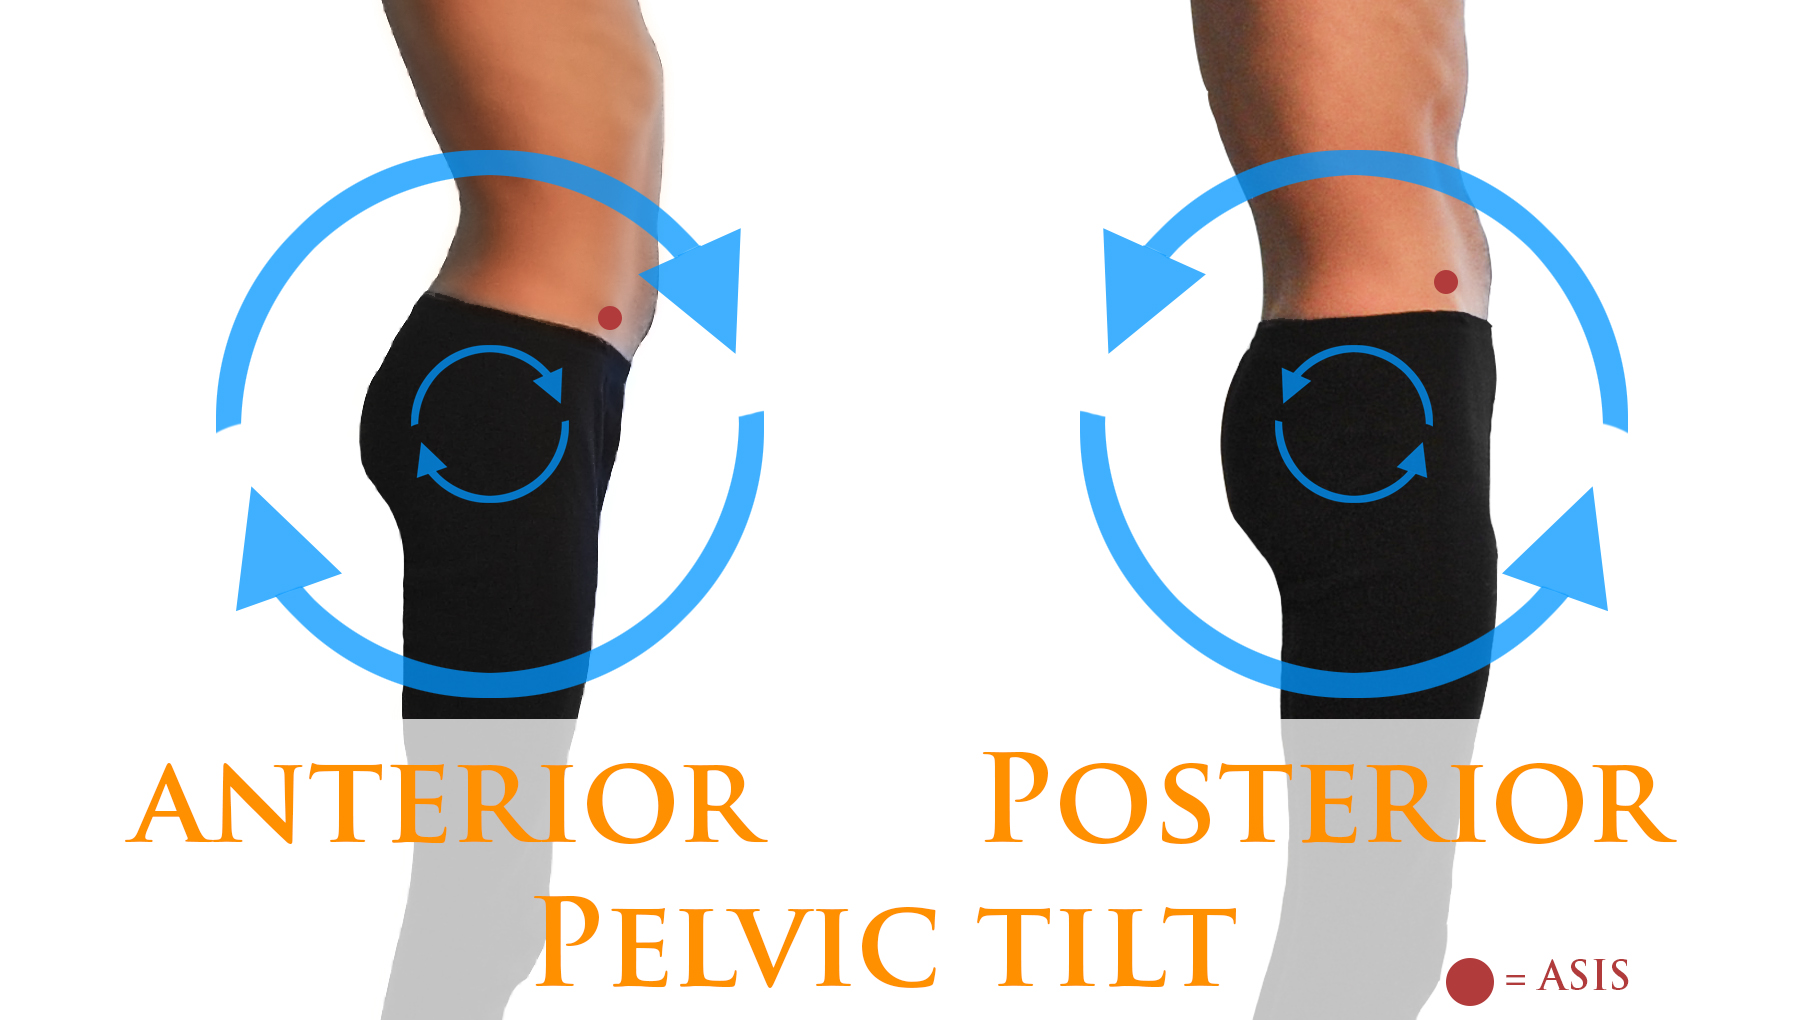 Pelvic Tilt 3 Inches In 1 Week